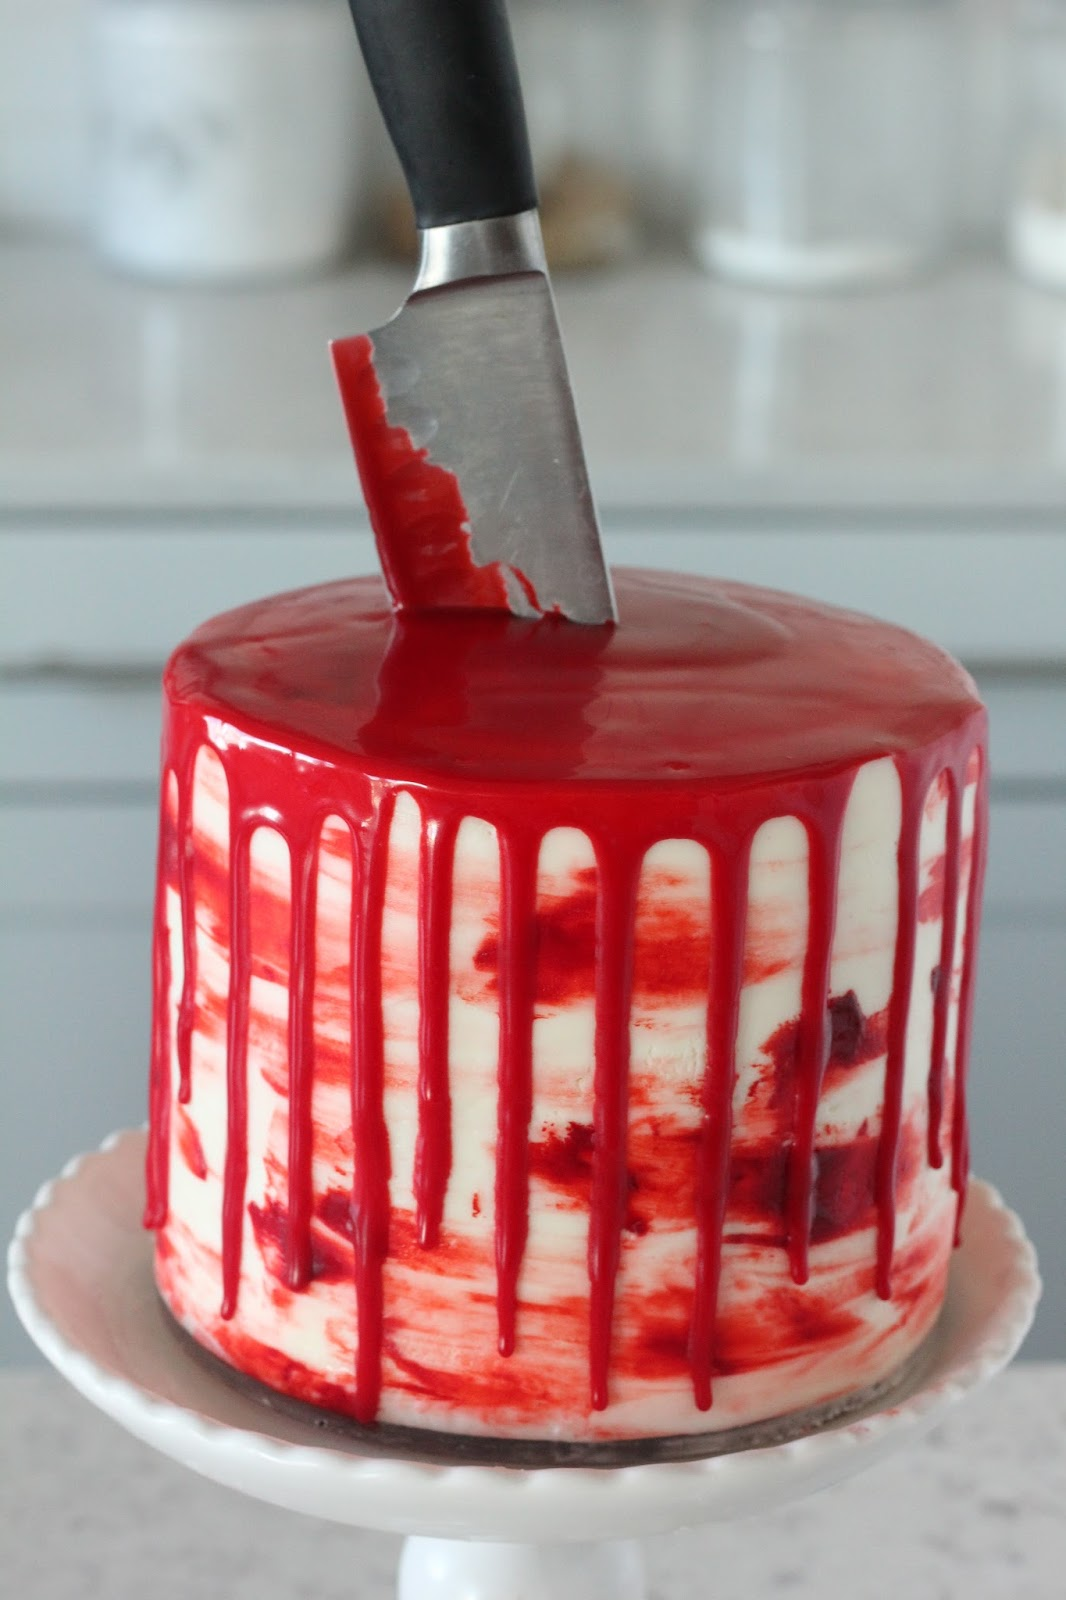 Halloween Bloody Knife Cake (Red Velvet Cake with Almond Cream ...